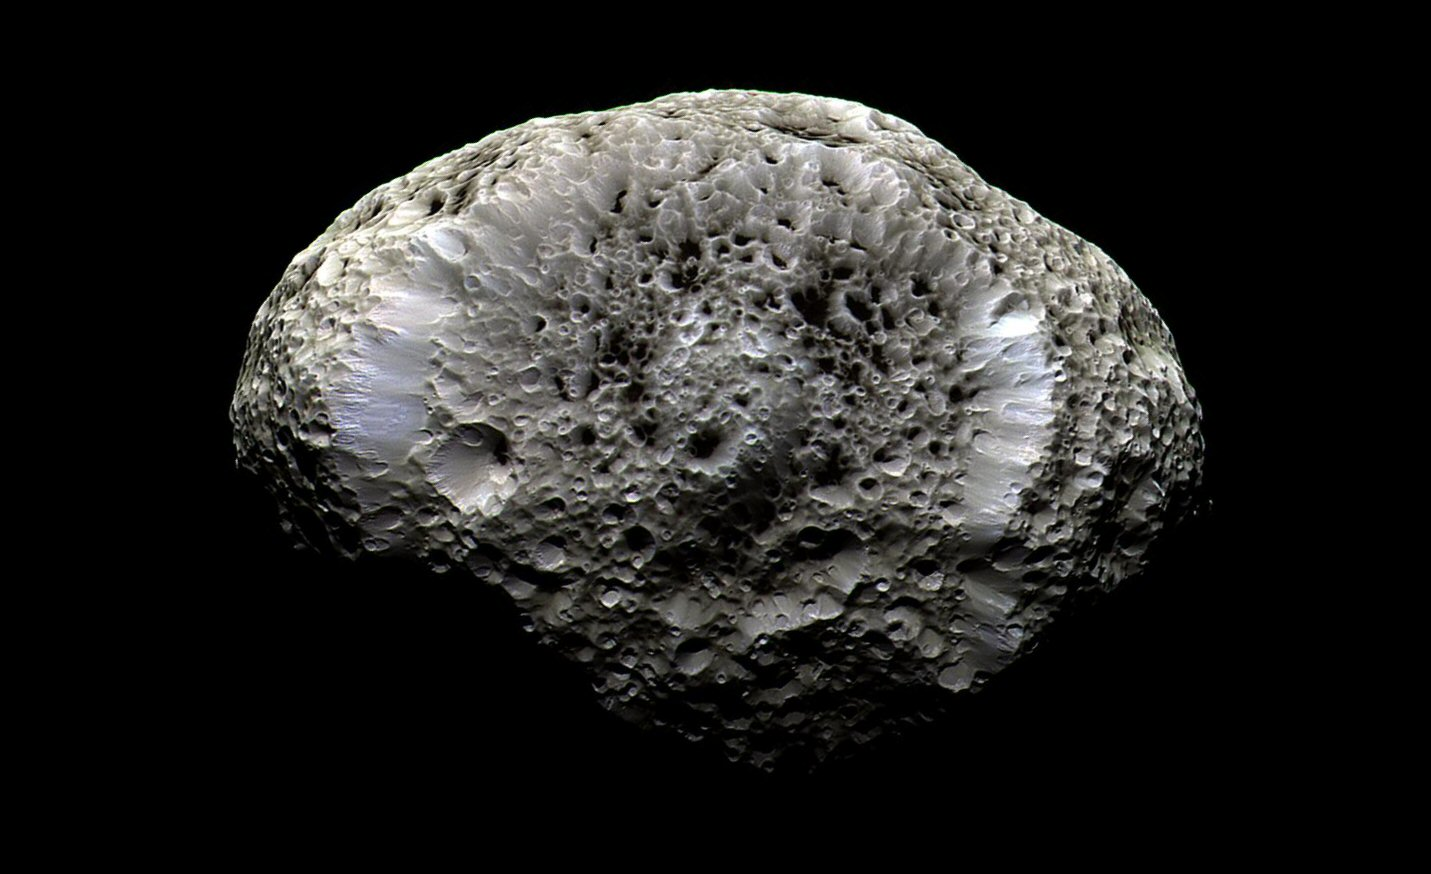 Hyperion - satellite of Saturn